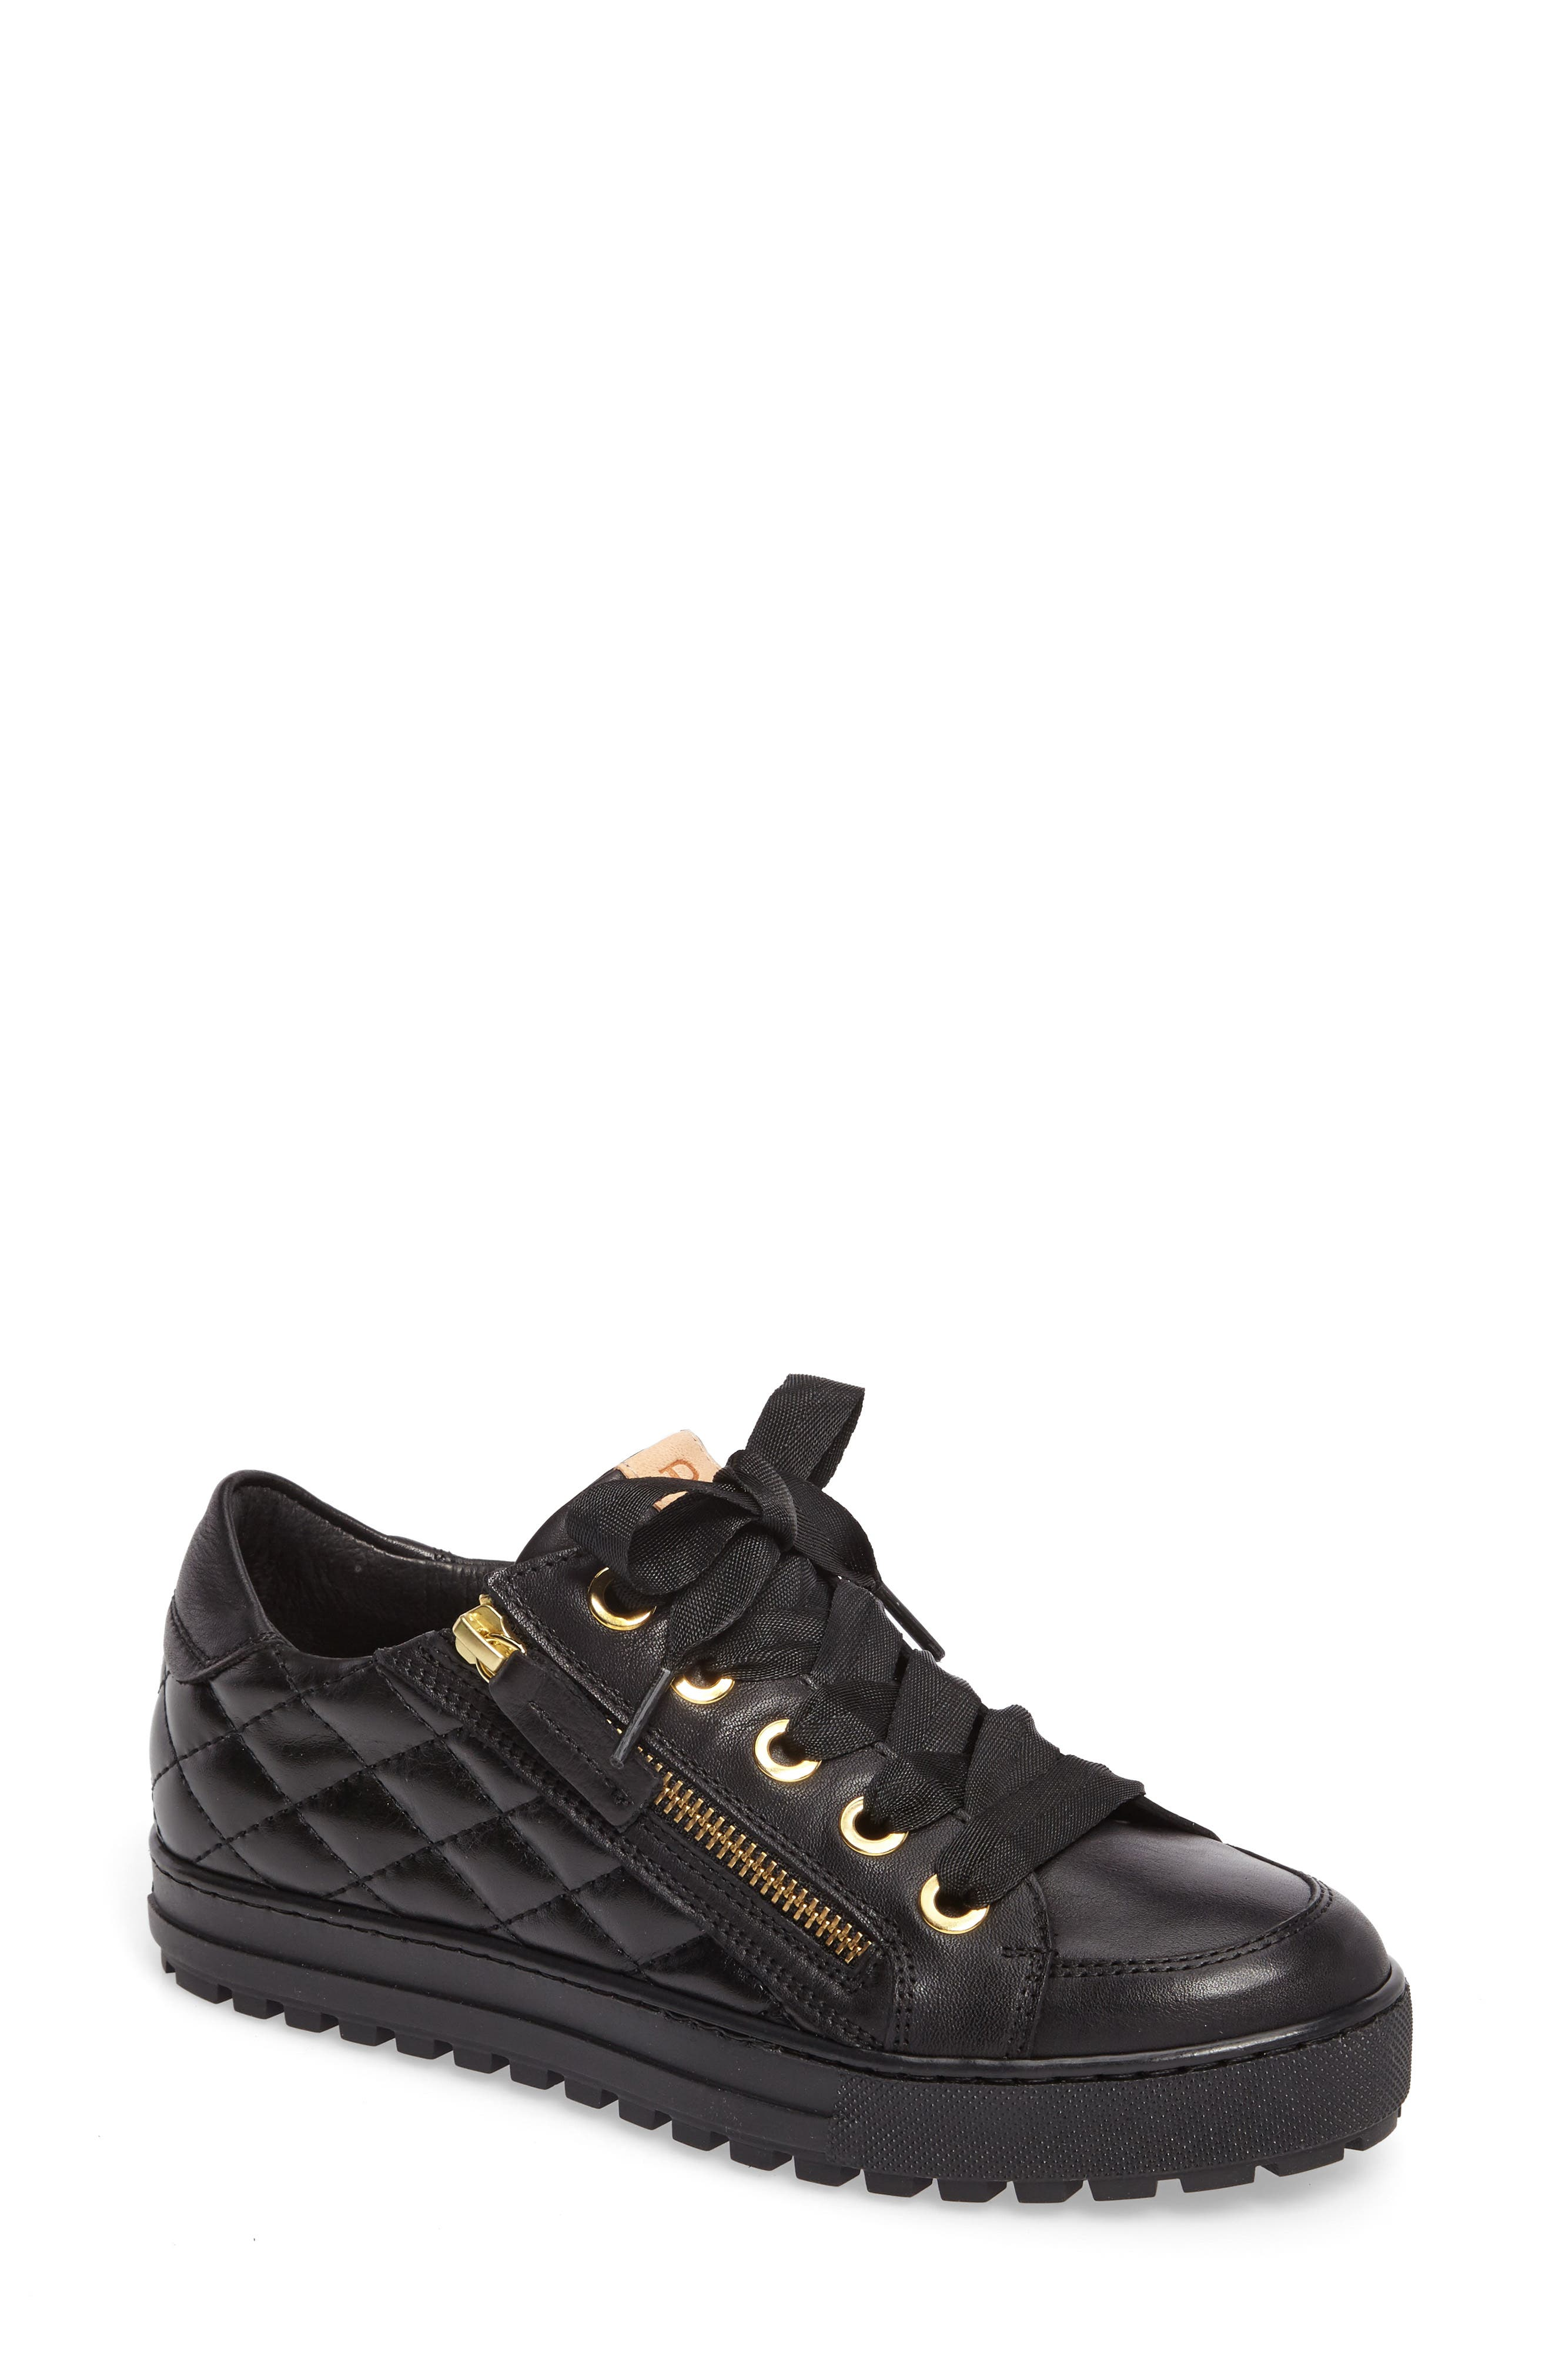 Linden Sneaker,                         Main,                         color,